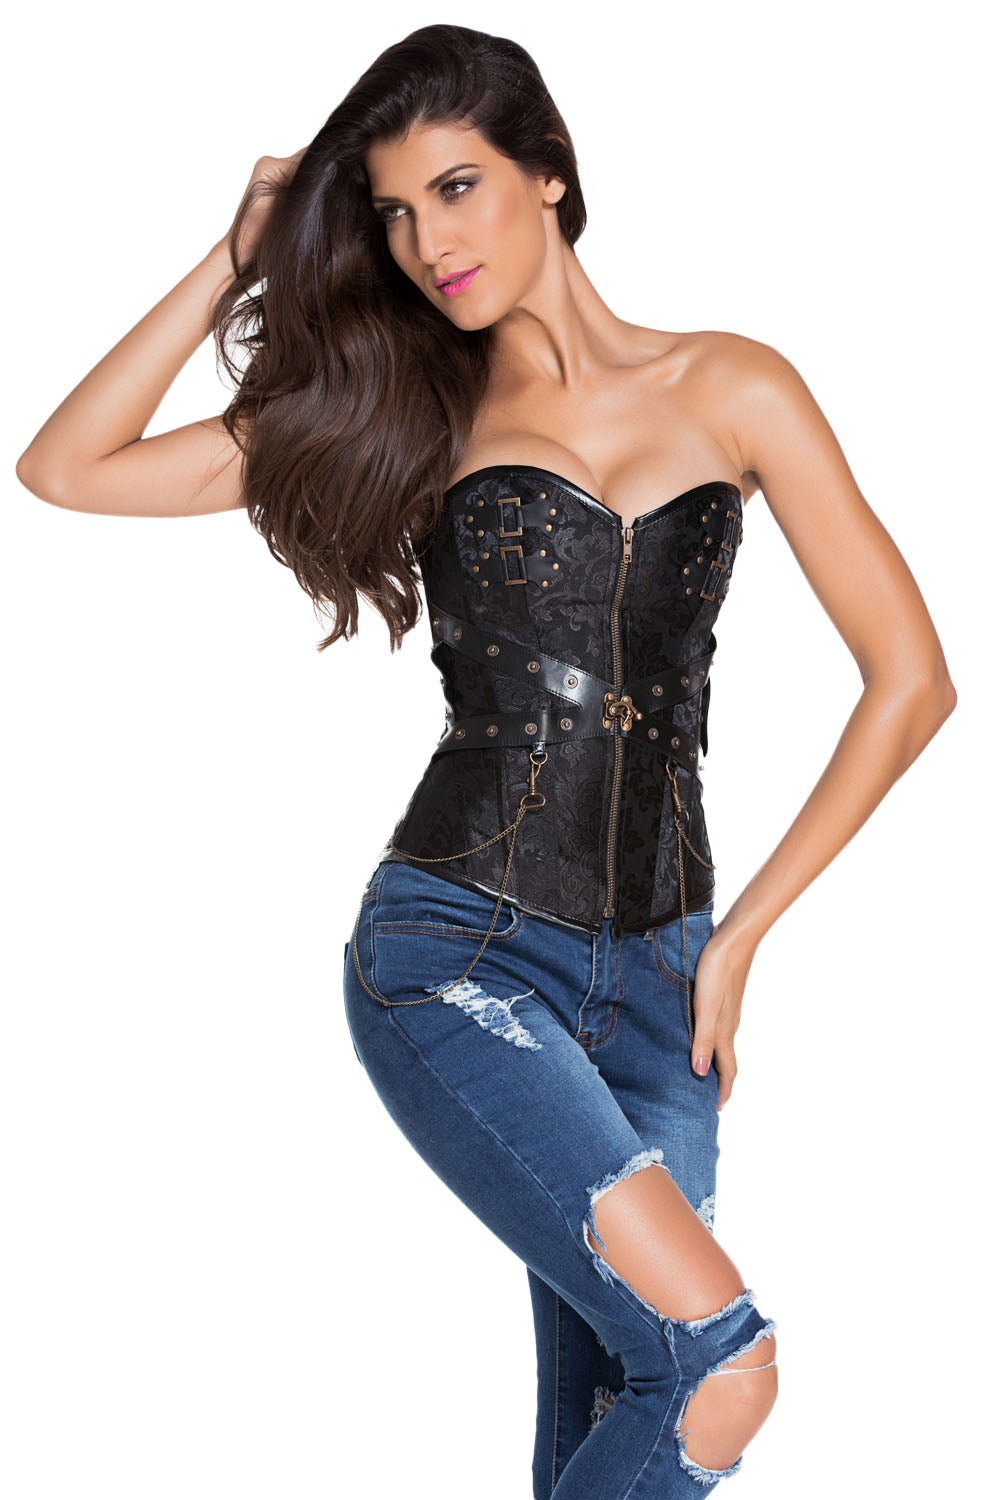 Black Zip Front Steampunk Corset with Thong Corsets Discount Designer Fashion Clothes Shoes Bags Women Men Kids Children Black Owned Business